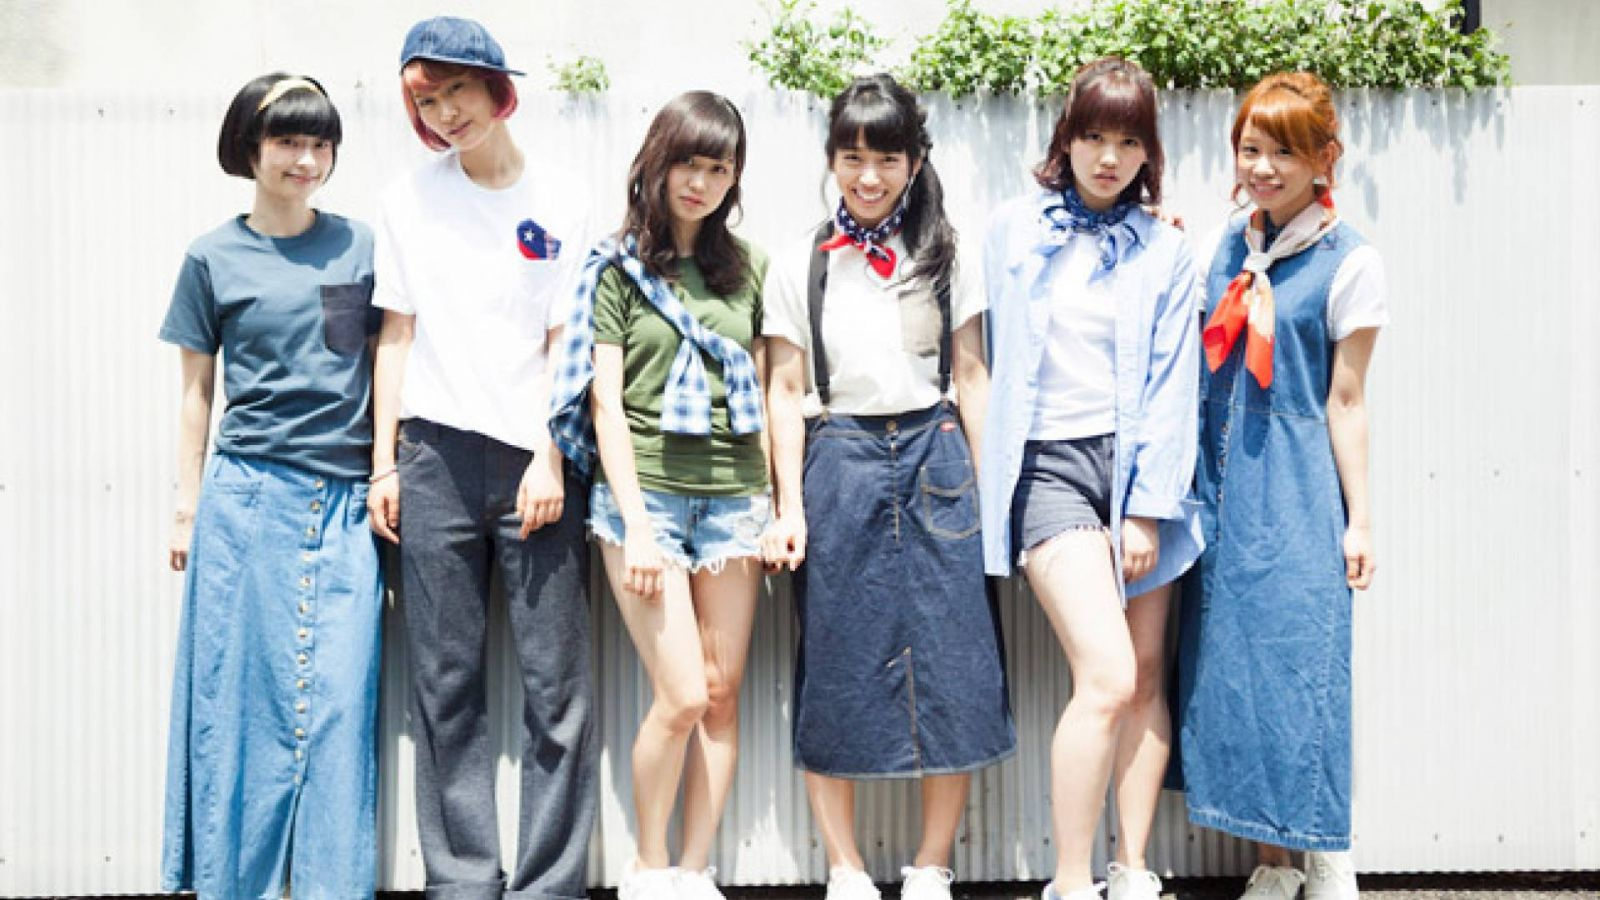 lyrical school © lyrical school. All rights reserved.